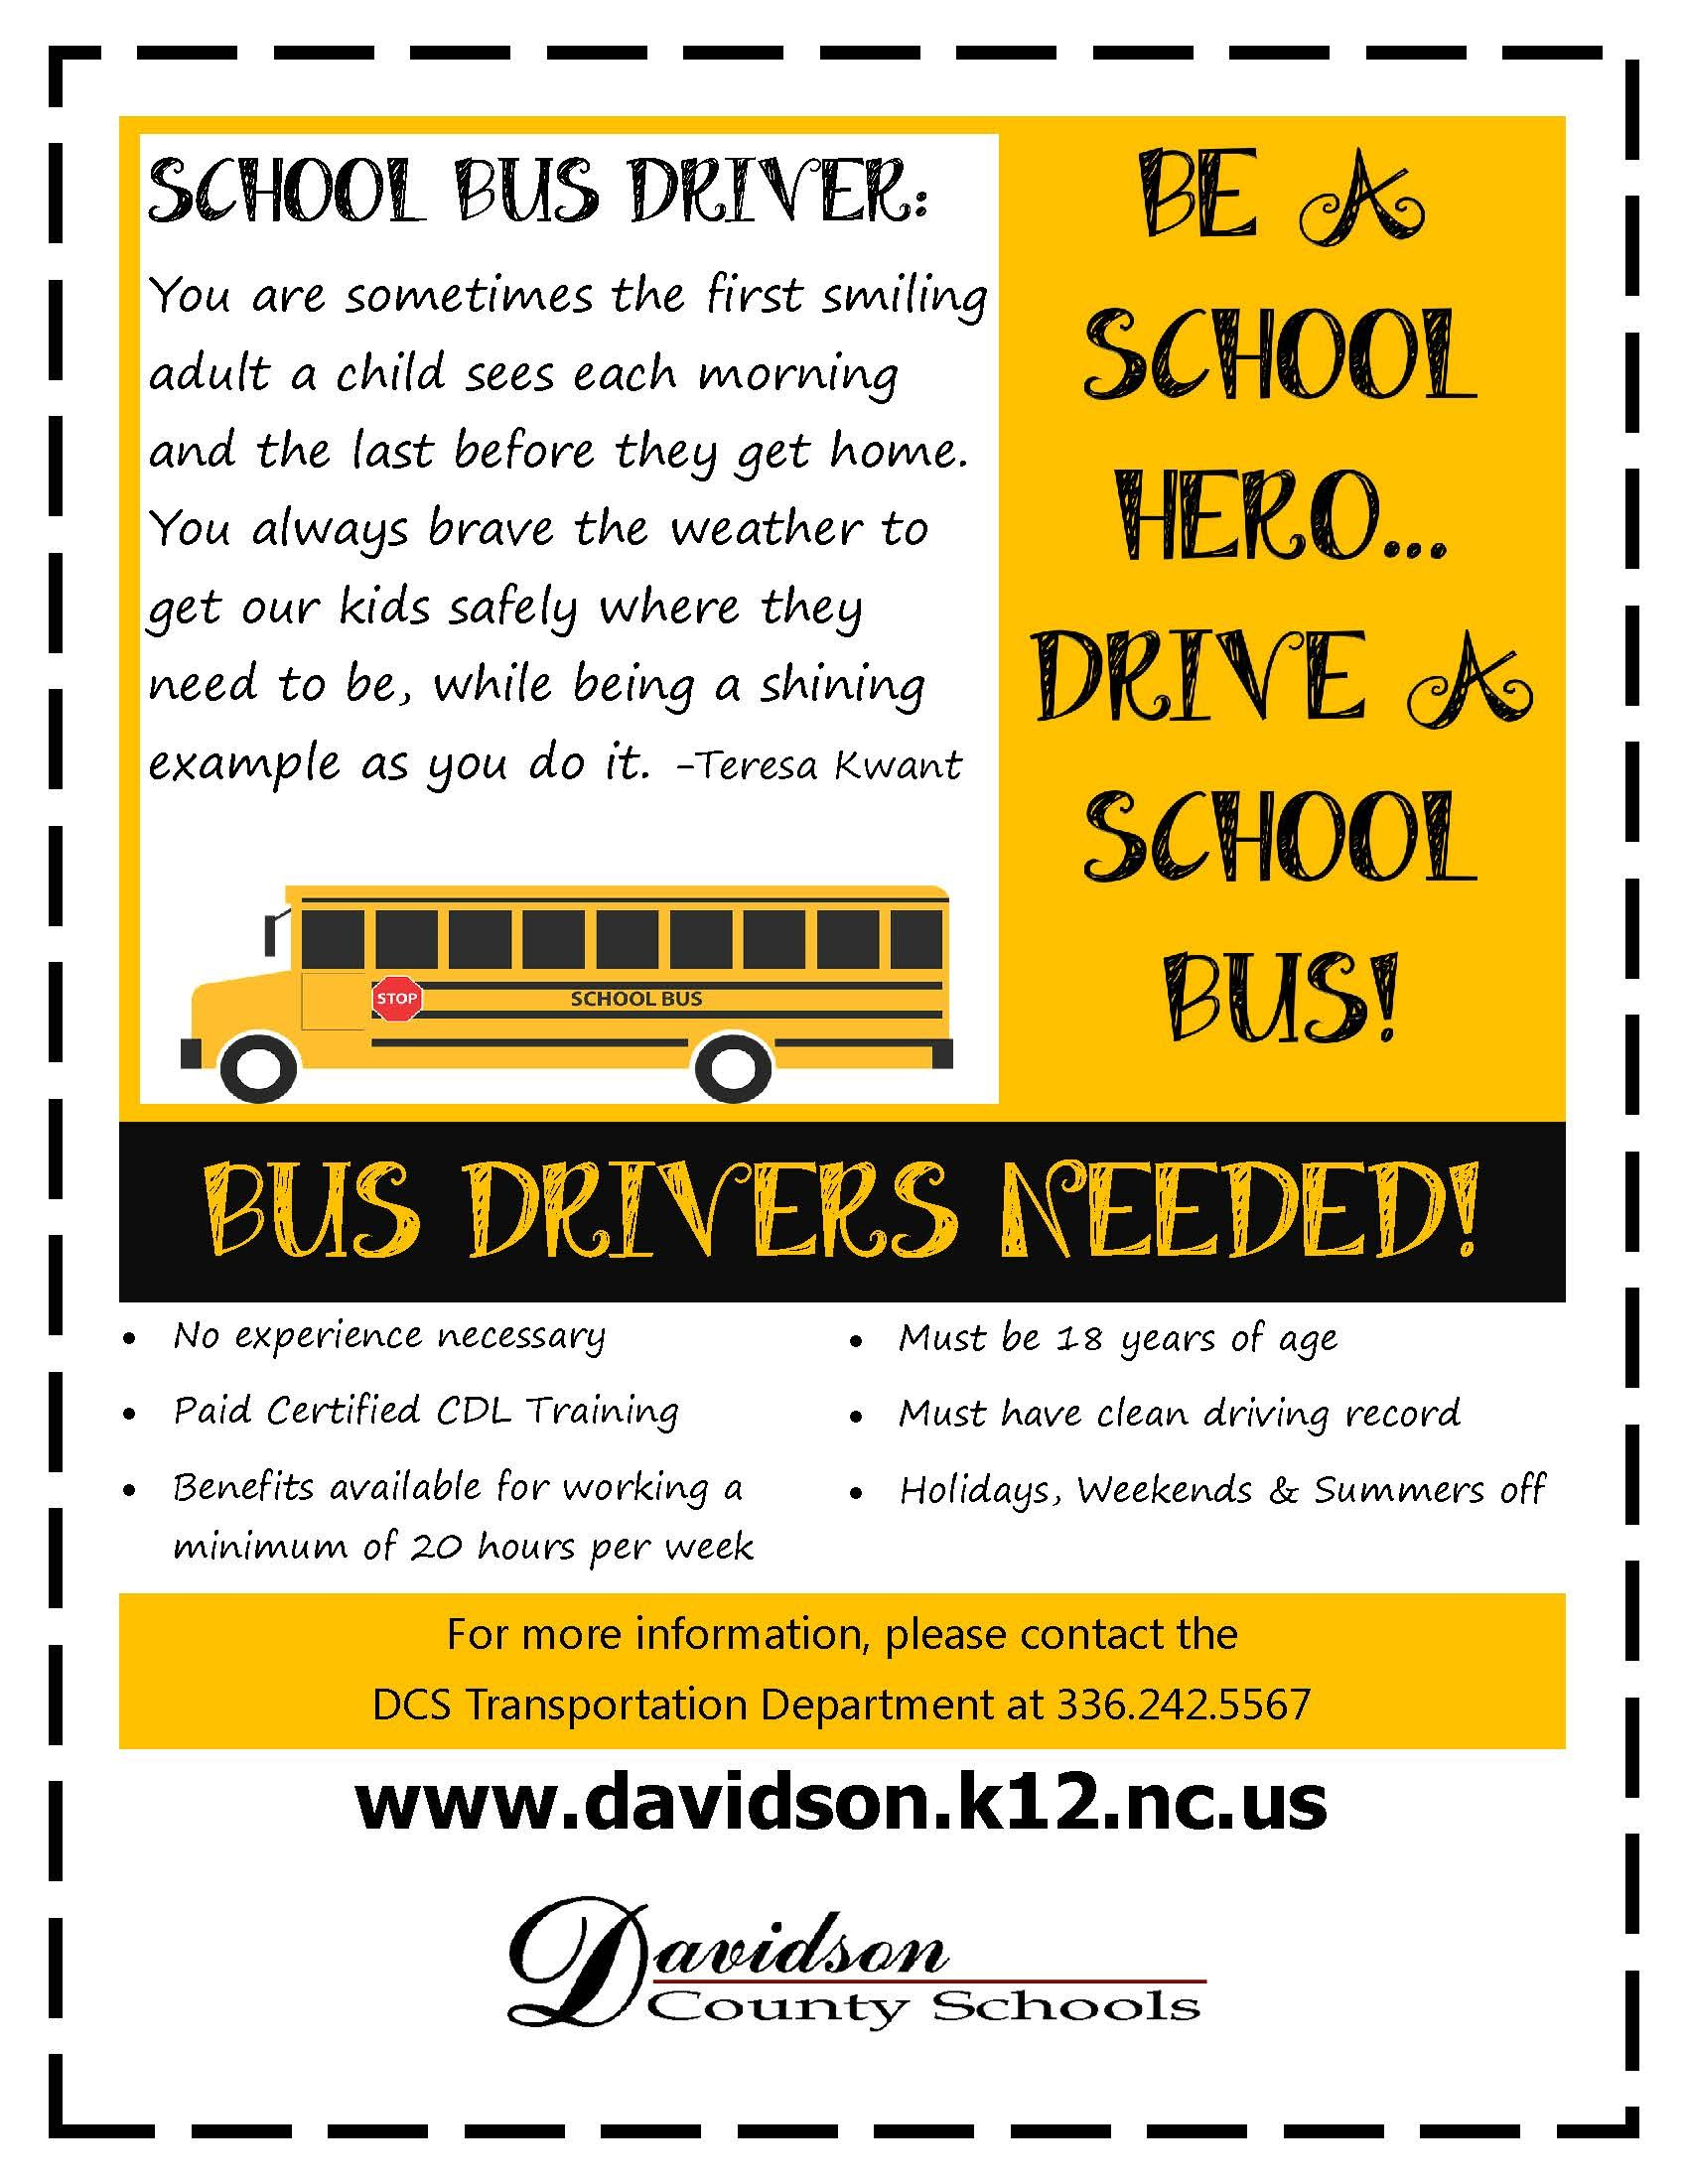 Bus Driver Information Flier